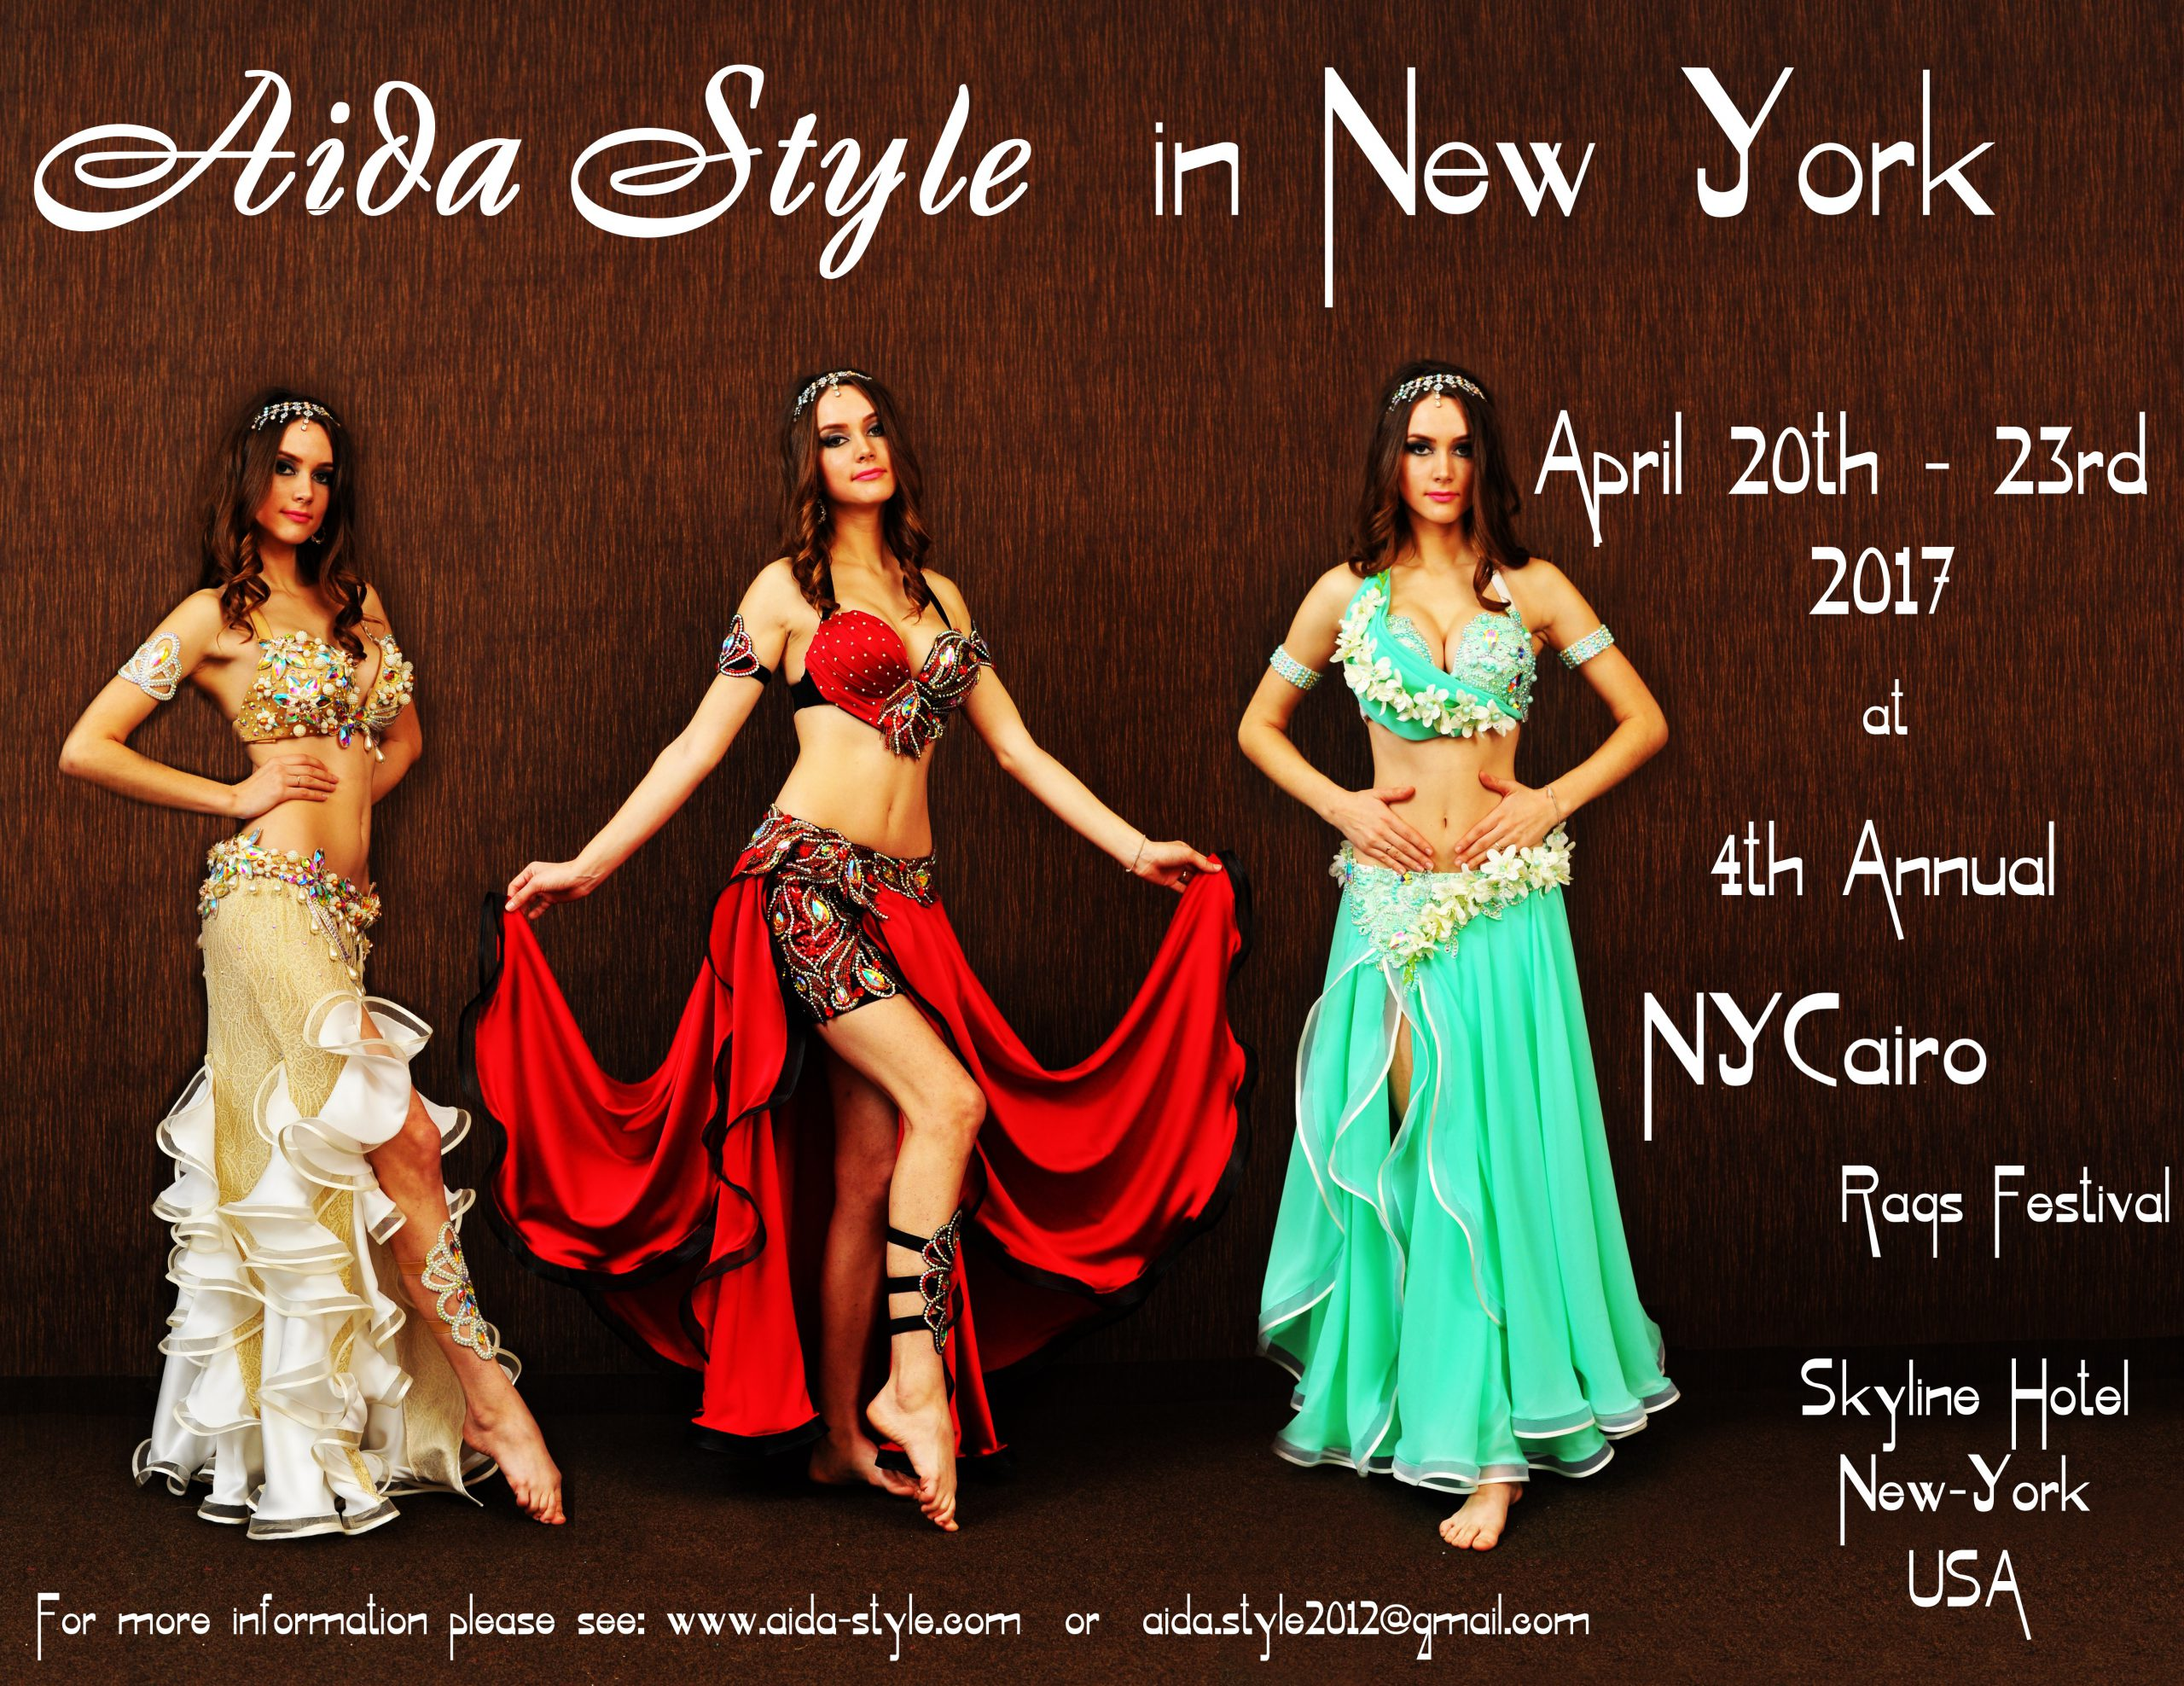 Aida Style at NYCairo 2017 in New York, USA